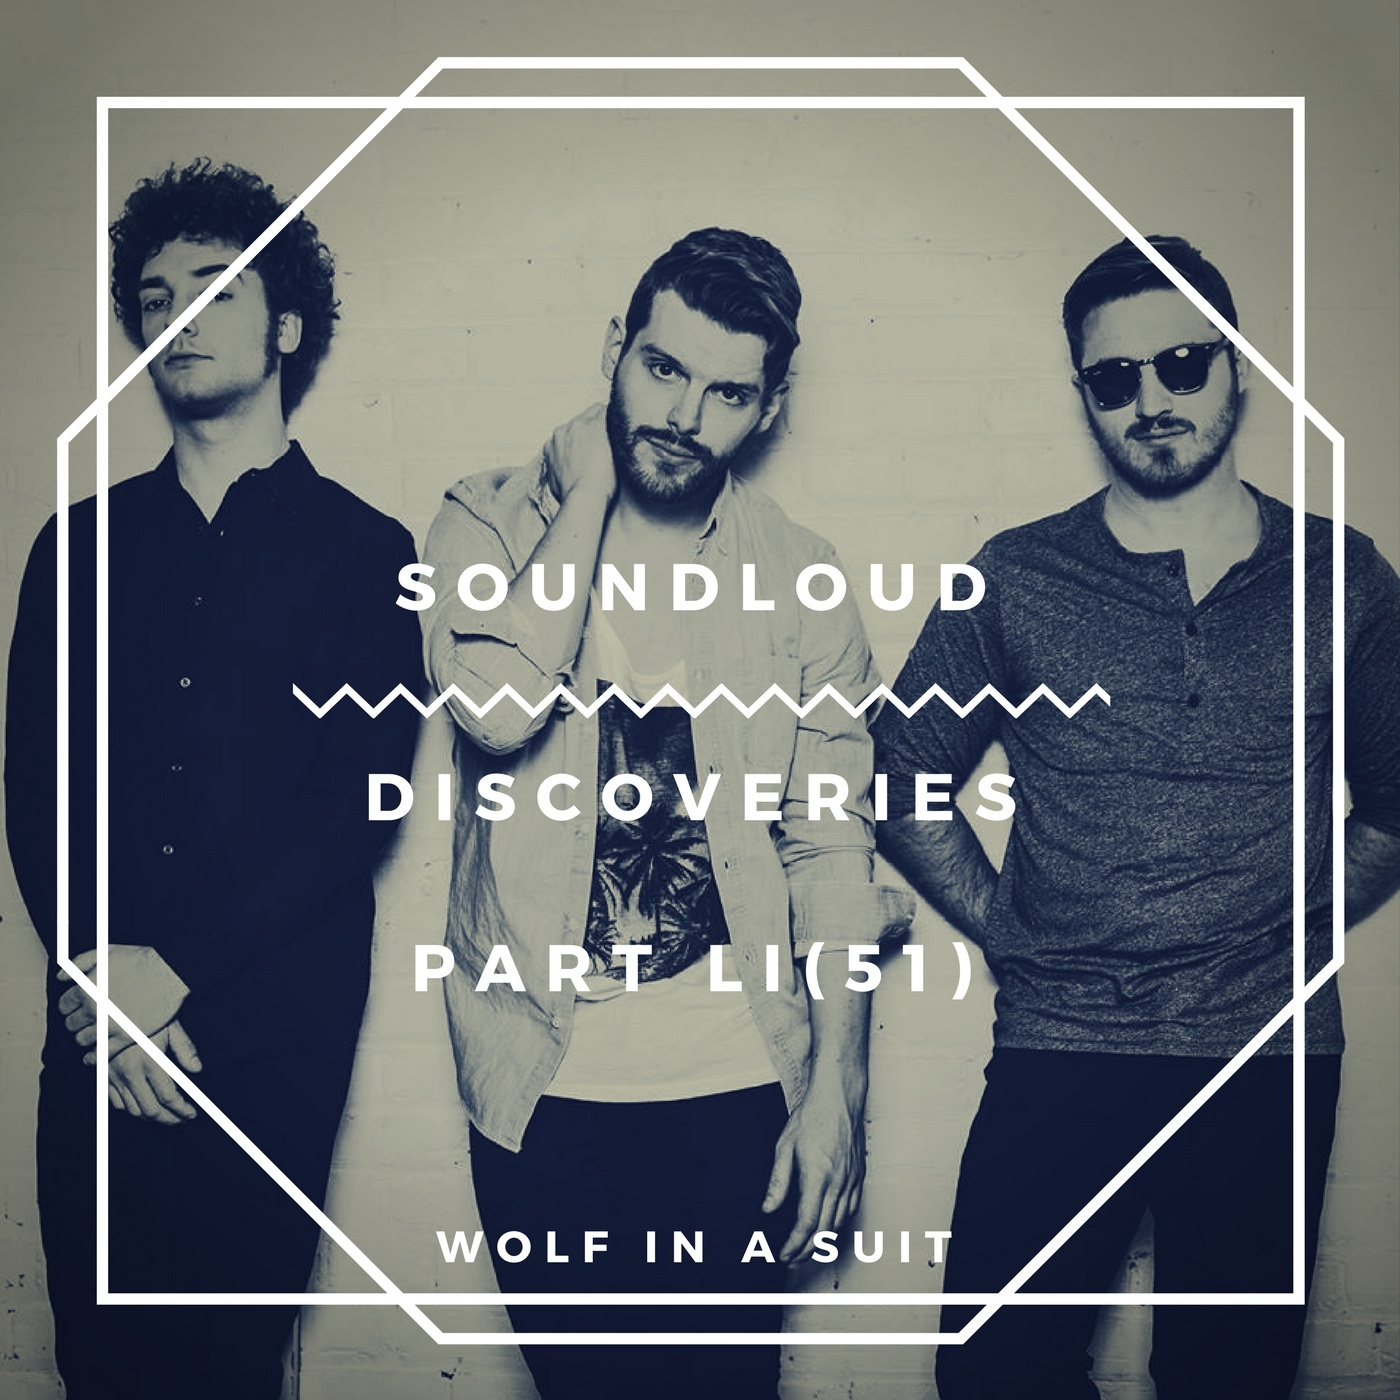 Playlist- Soundcloud Discoveries Part LI -indie music-new music-indie rock-indie pop-music blog-indie blog-wolf in a suit-wolfinasuit